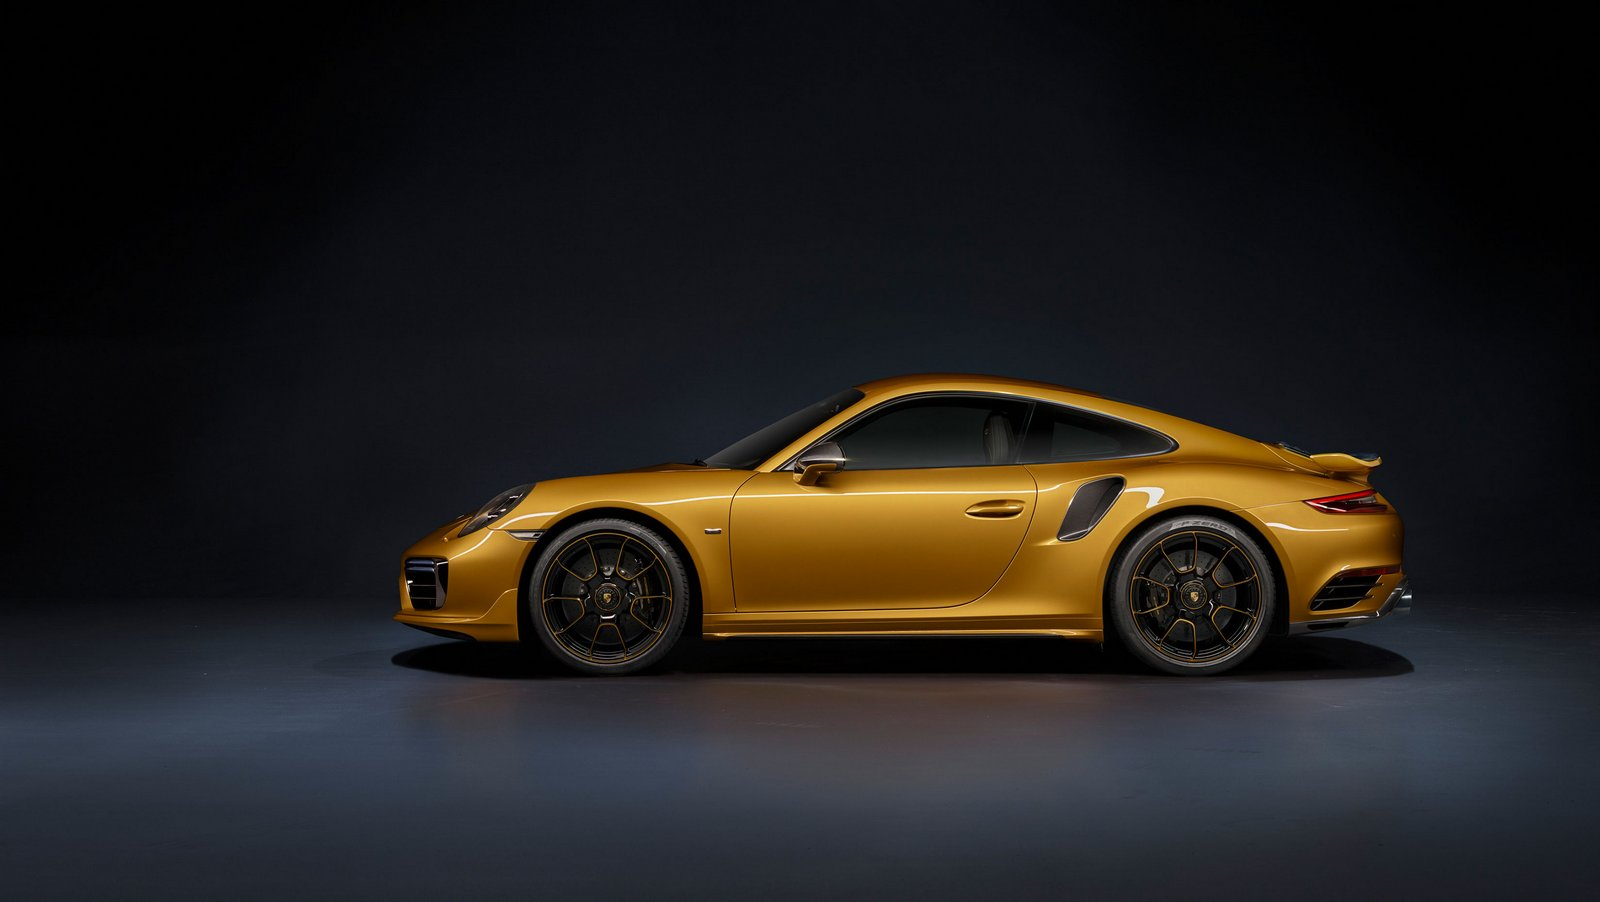 new porsche 911 turbo s exclusive series gets an additional 27hp. Black Bedroom Furniture Sets. Home Design Ideas